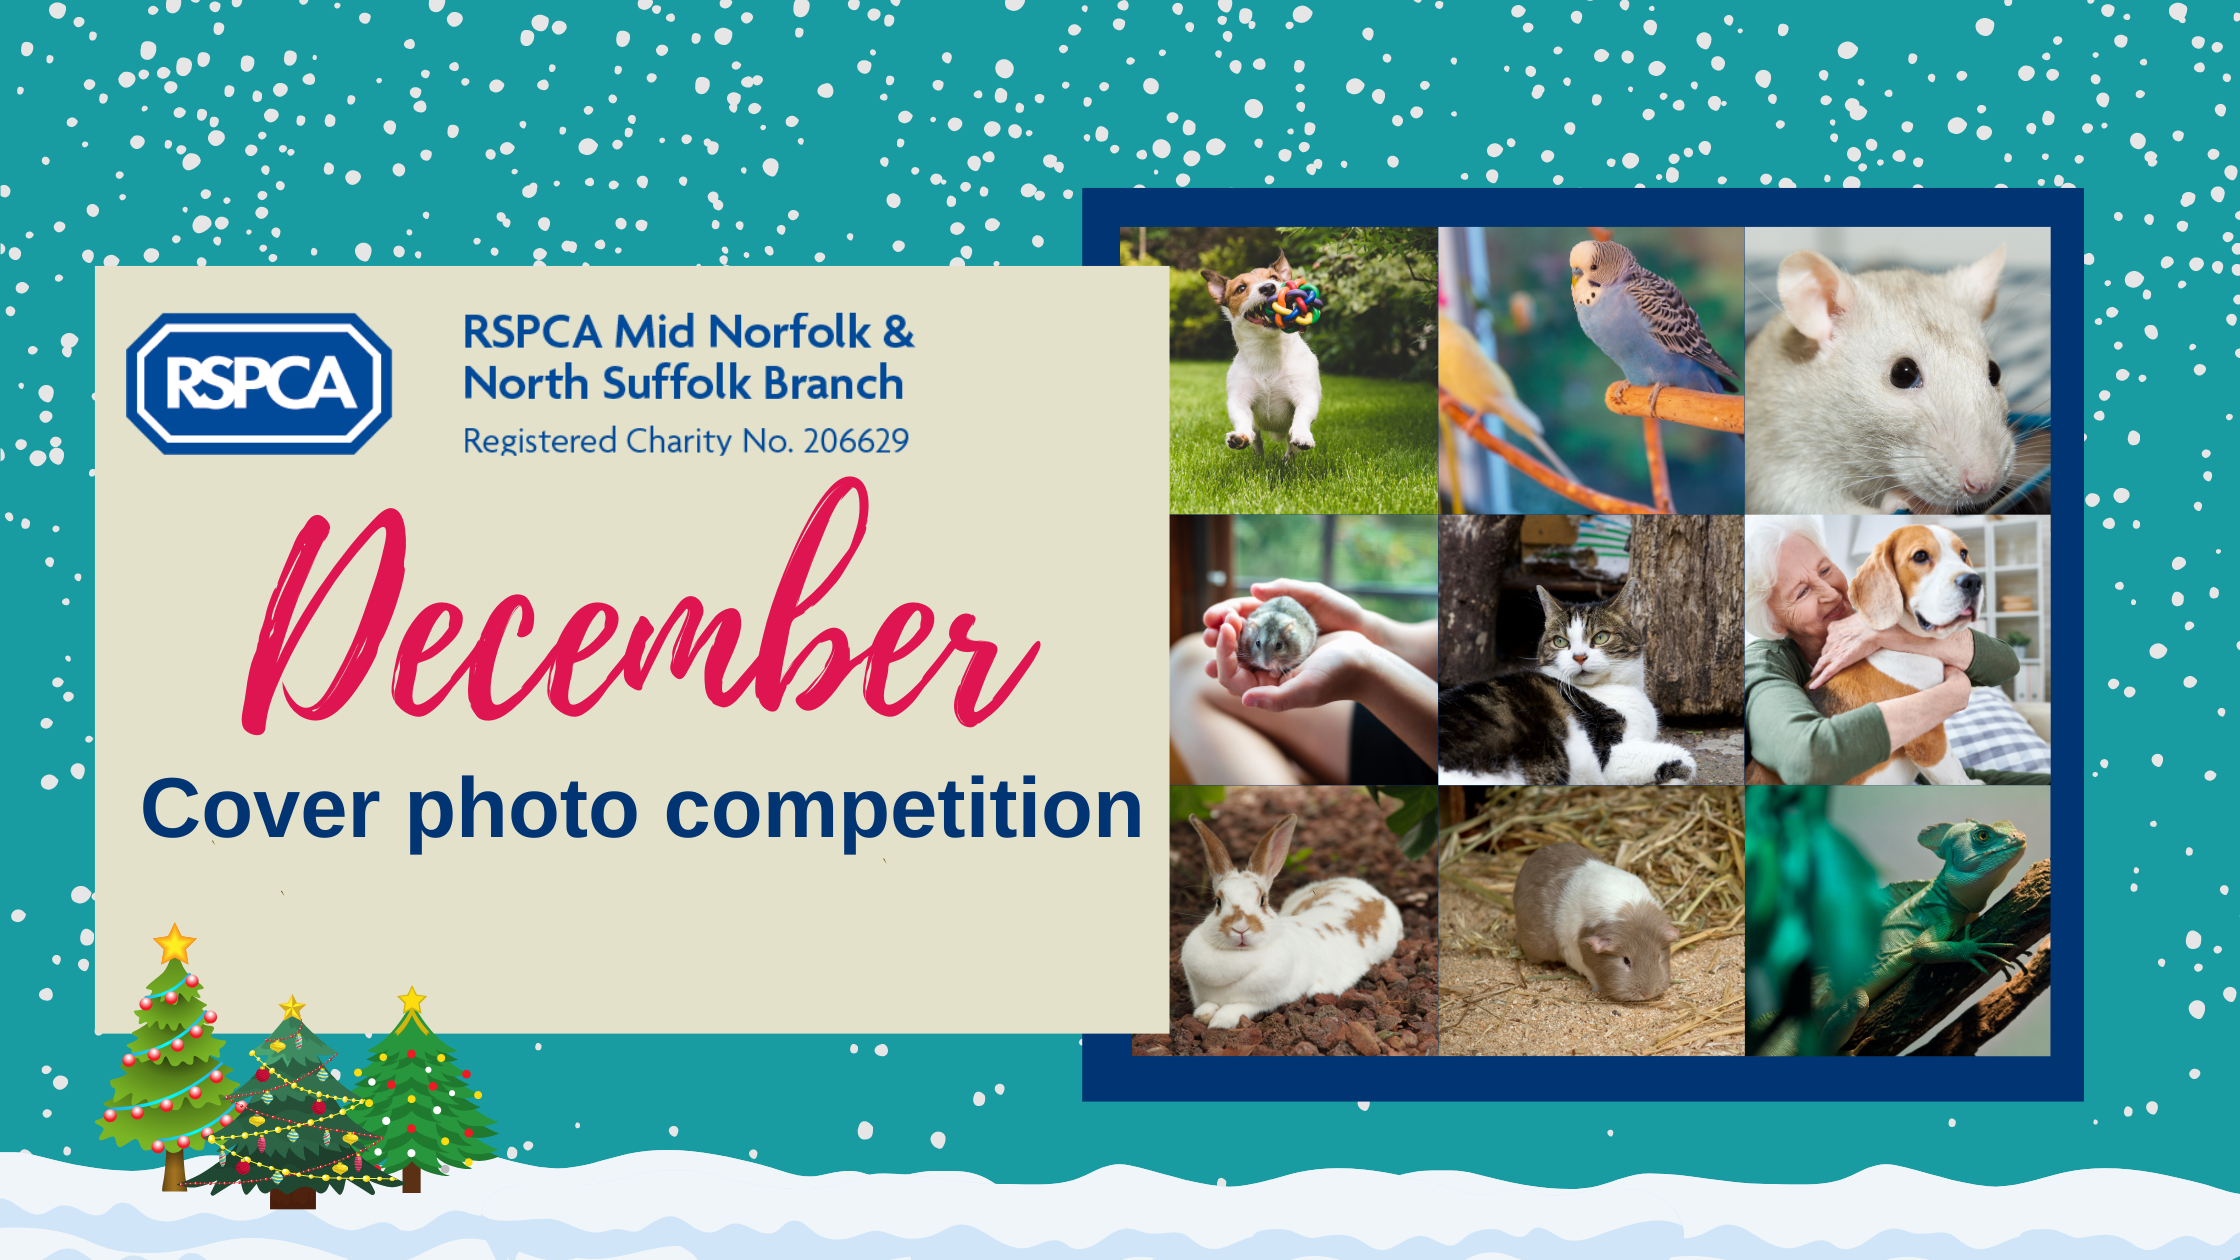 December cover photo competition!